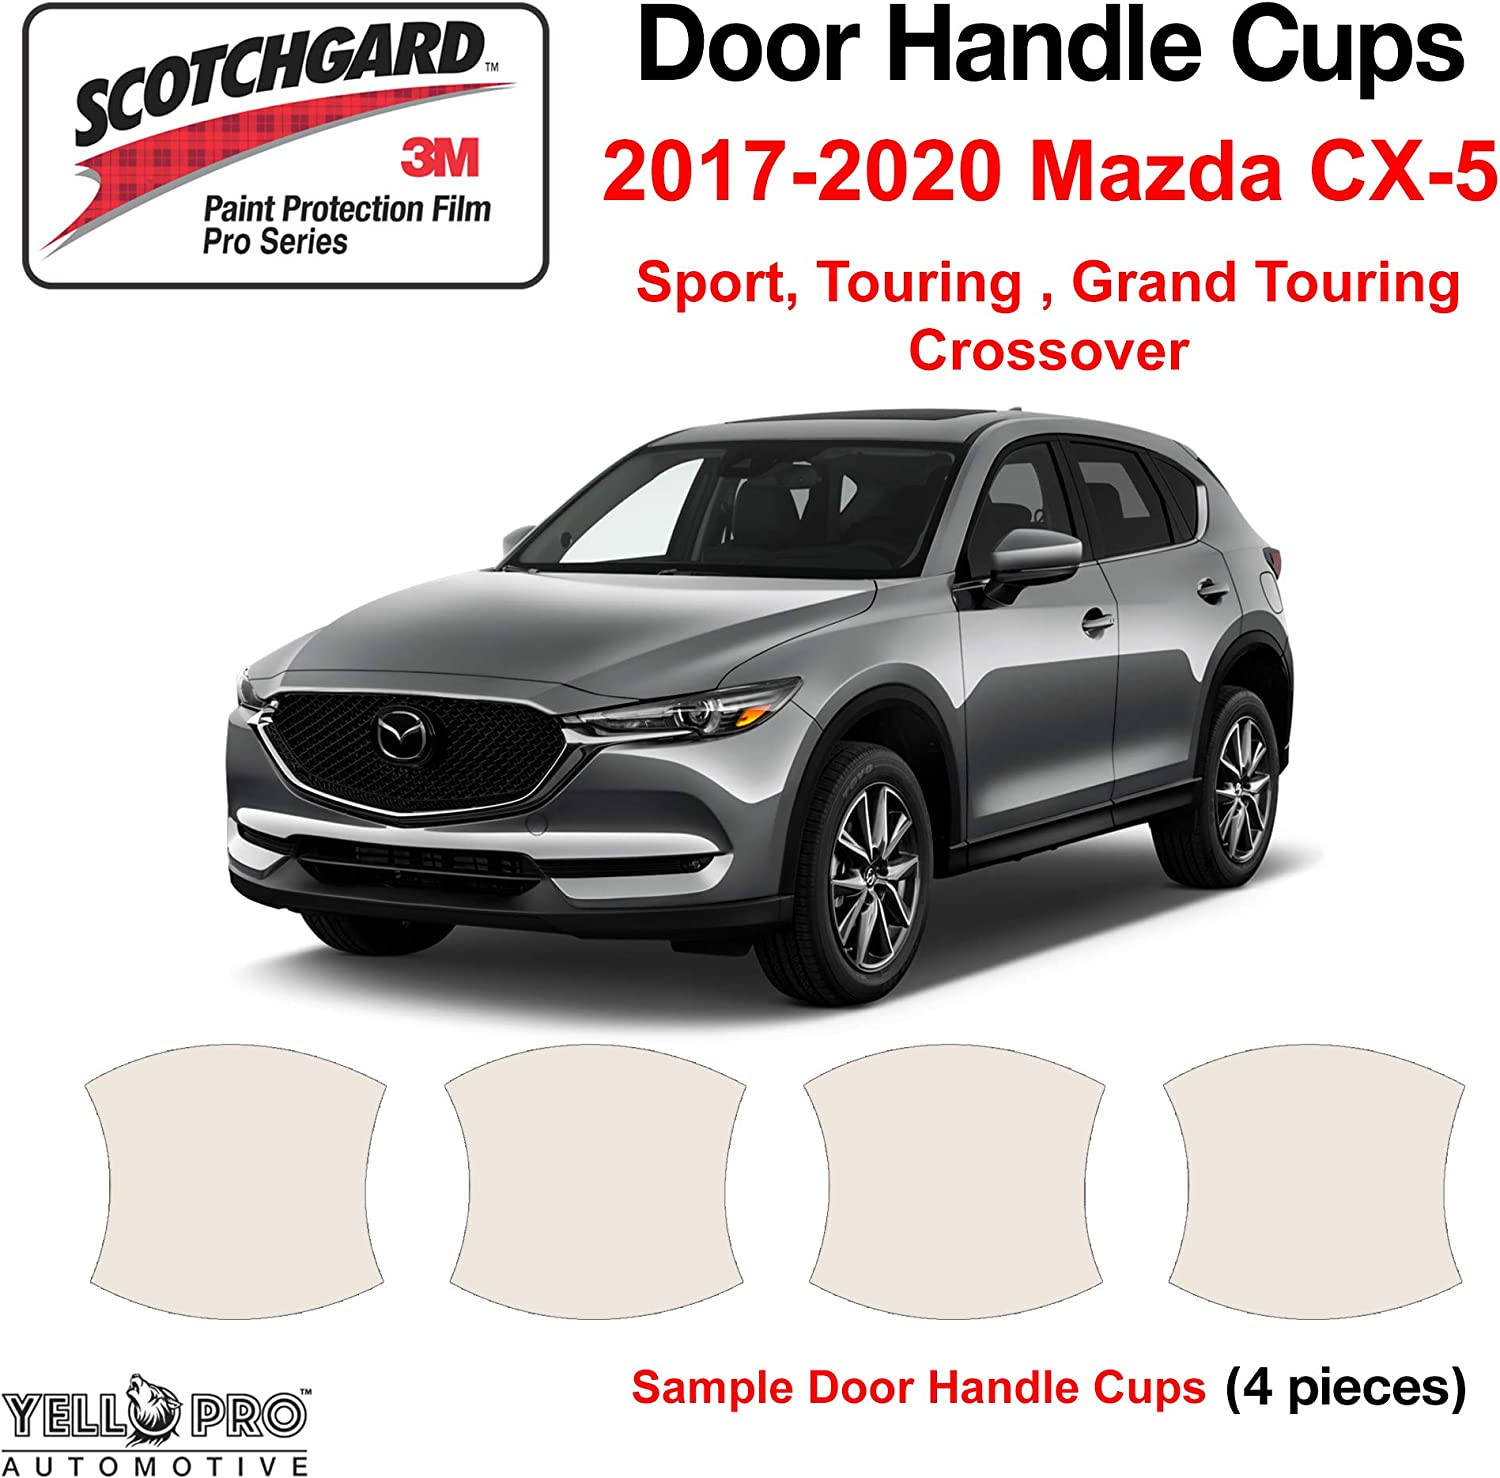 YelloPro Custom Fit Door Handle Cup 3M Scotchgard Anti Scratch Clear Bra Paint Protector Film Cover Self Healing Guard Kit For 2017 2018 2019 2020 Mazda CX-5 Sport,Touring,Grand Touring 4 Dr CROSSOVER